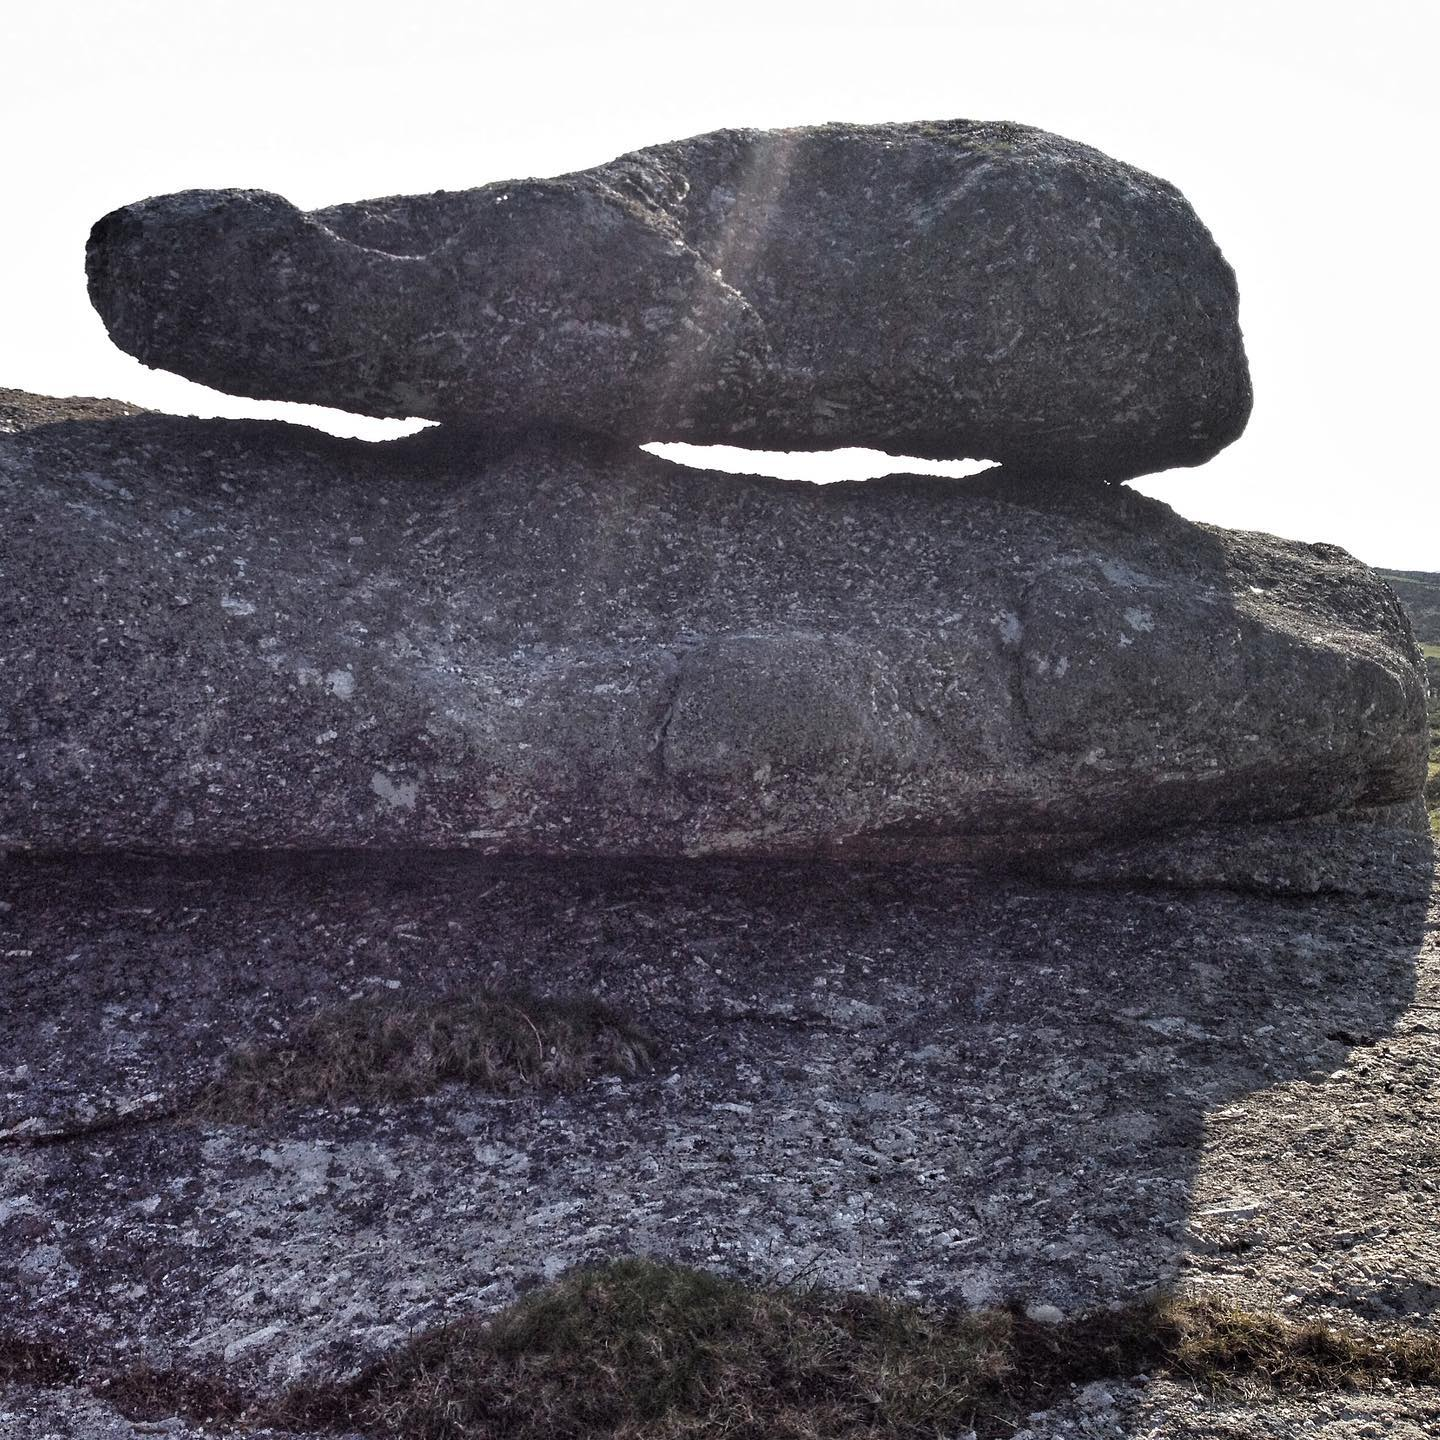 rosewall hill revisited. balancing stone. logan stone. rock basin. 2012-2021. this rather special stone is found adjacent to the main tor outcrop at western end of rosewall. there are three main granite outcrops along the crest of rosewall hill, all with significant features that would have made them candidates for inclusion in the ancient cosmologies of our ancestors. the extraordinary shape of the tors, the balancing stones and the rock basins  might well be understood as the work of the ancestors. the landscape has been much mutilated by more recent mining activity but tin mining here goes back to the bronze age and there are the remains of some built stone monuments, two standing stones and a stone cairn circle. ..#rosewallhill, #loganstones, #balancingstones, #rockbasins, #solutionsbasins, #naturalstonefeatures, #theancestors #ancientcosmolgy, #ancientwisdom, #ancienthistory, #prehistory, #westpenwith, #montagecity.com